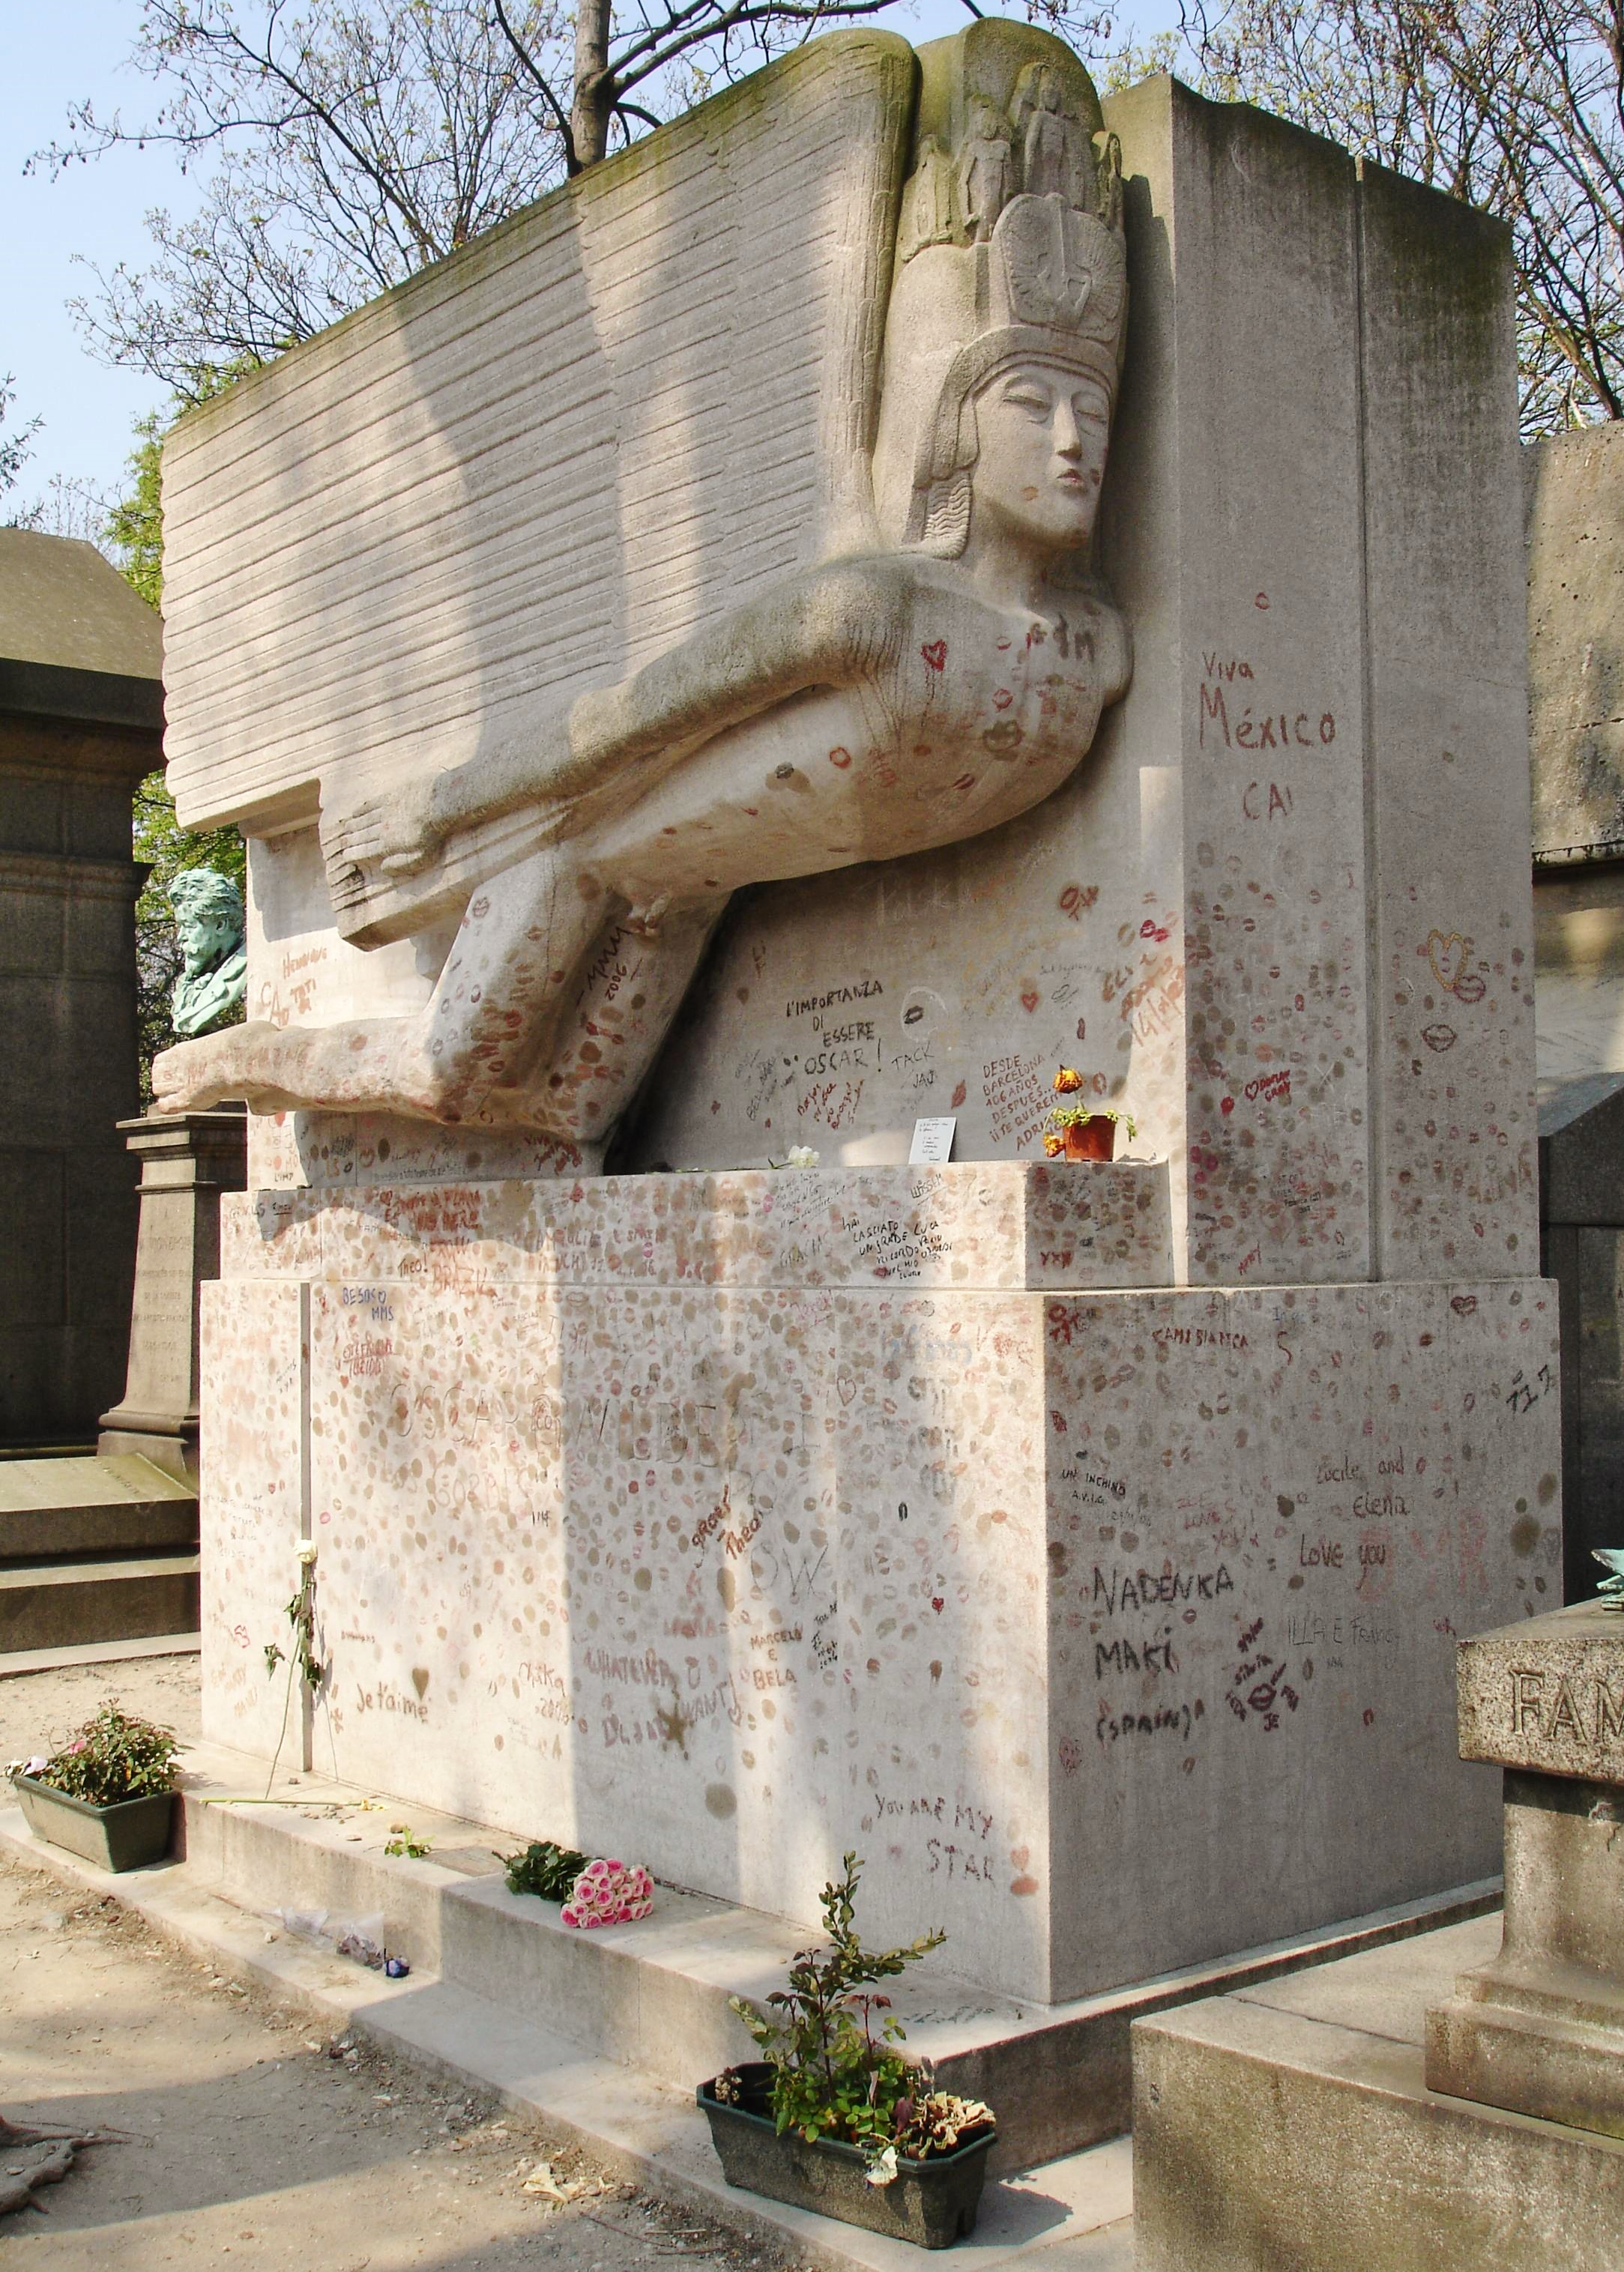 the history of oscar wilde oscar wilde s tomb at the pegravere lachaise cemetery in paris